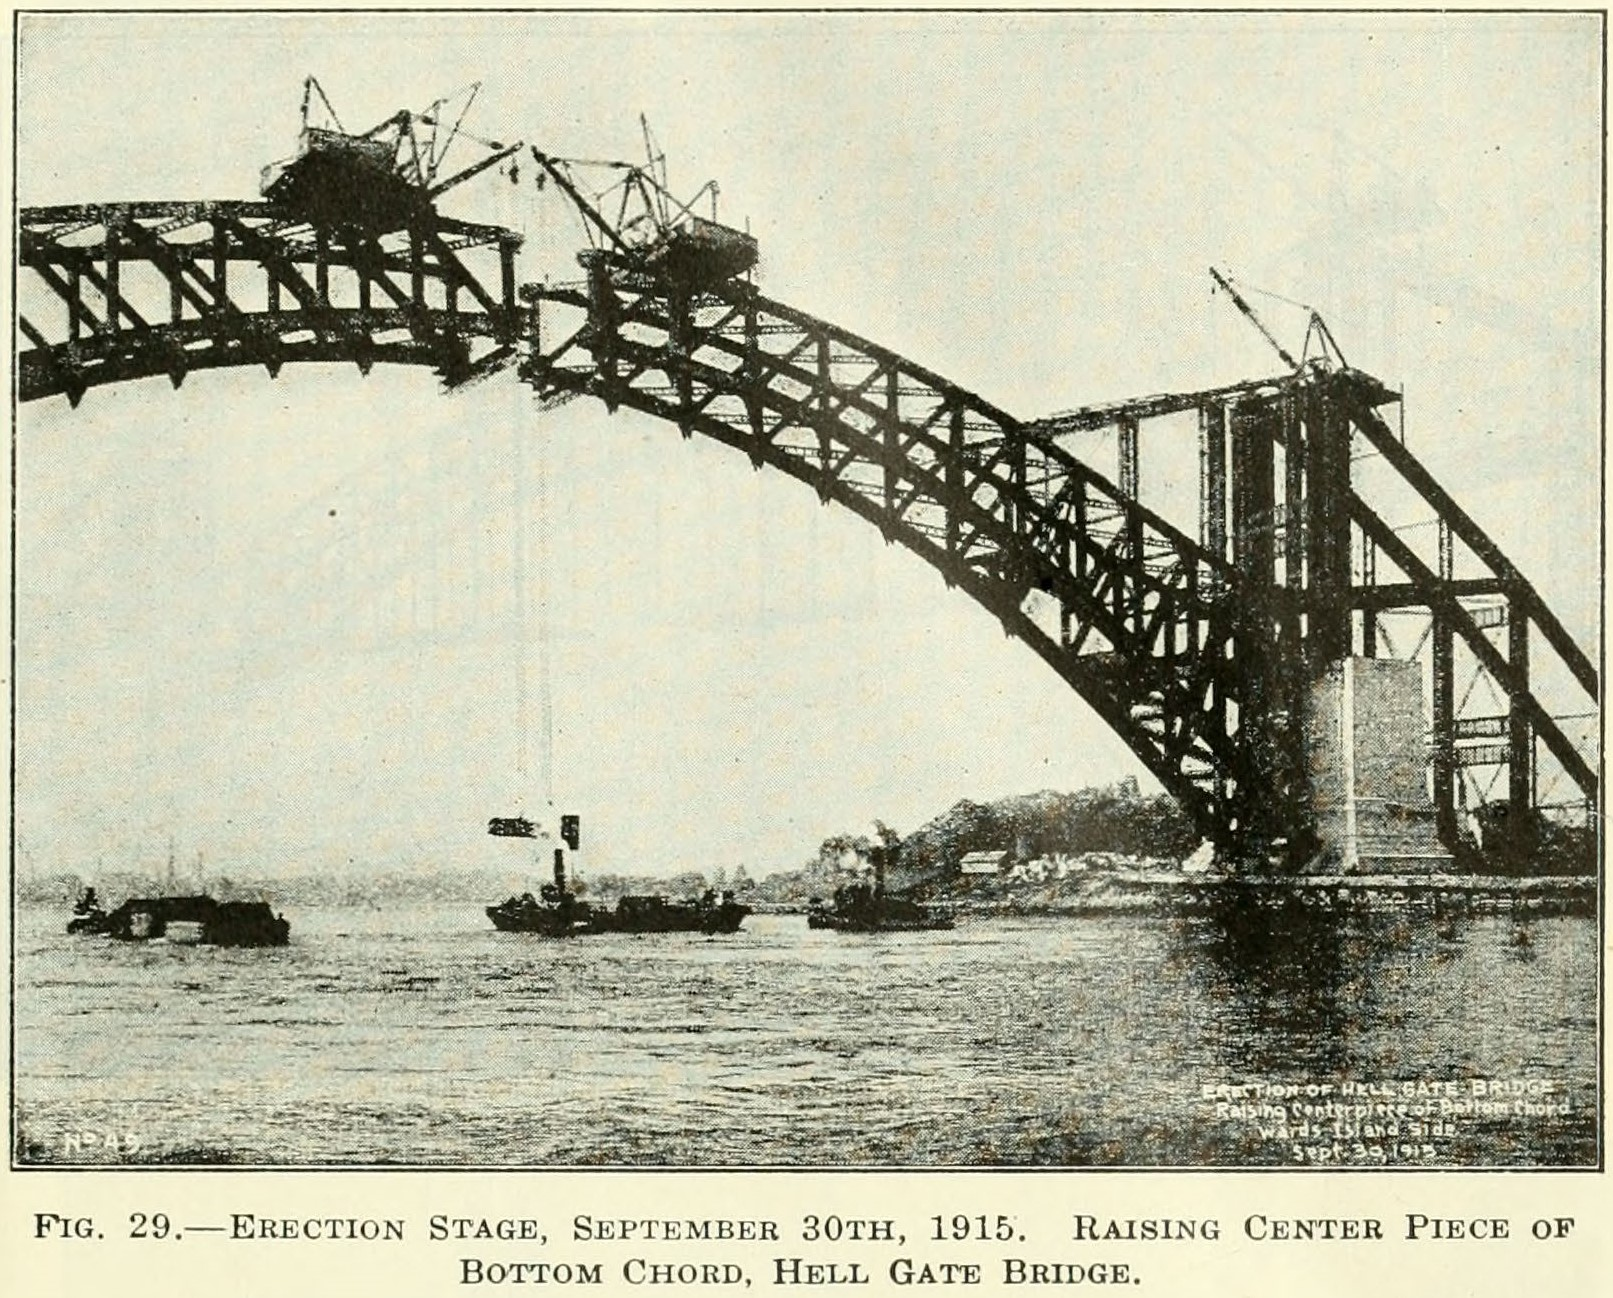 Construction of Hell Gate Bridge (1915)